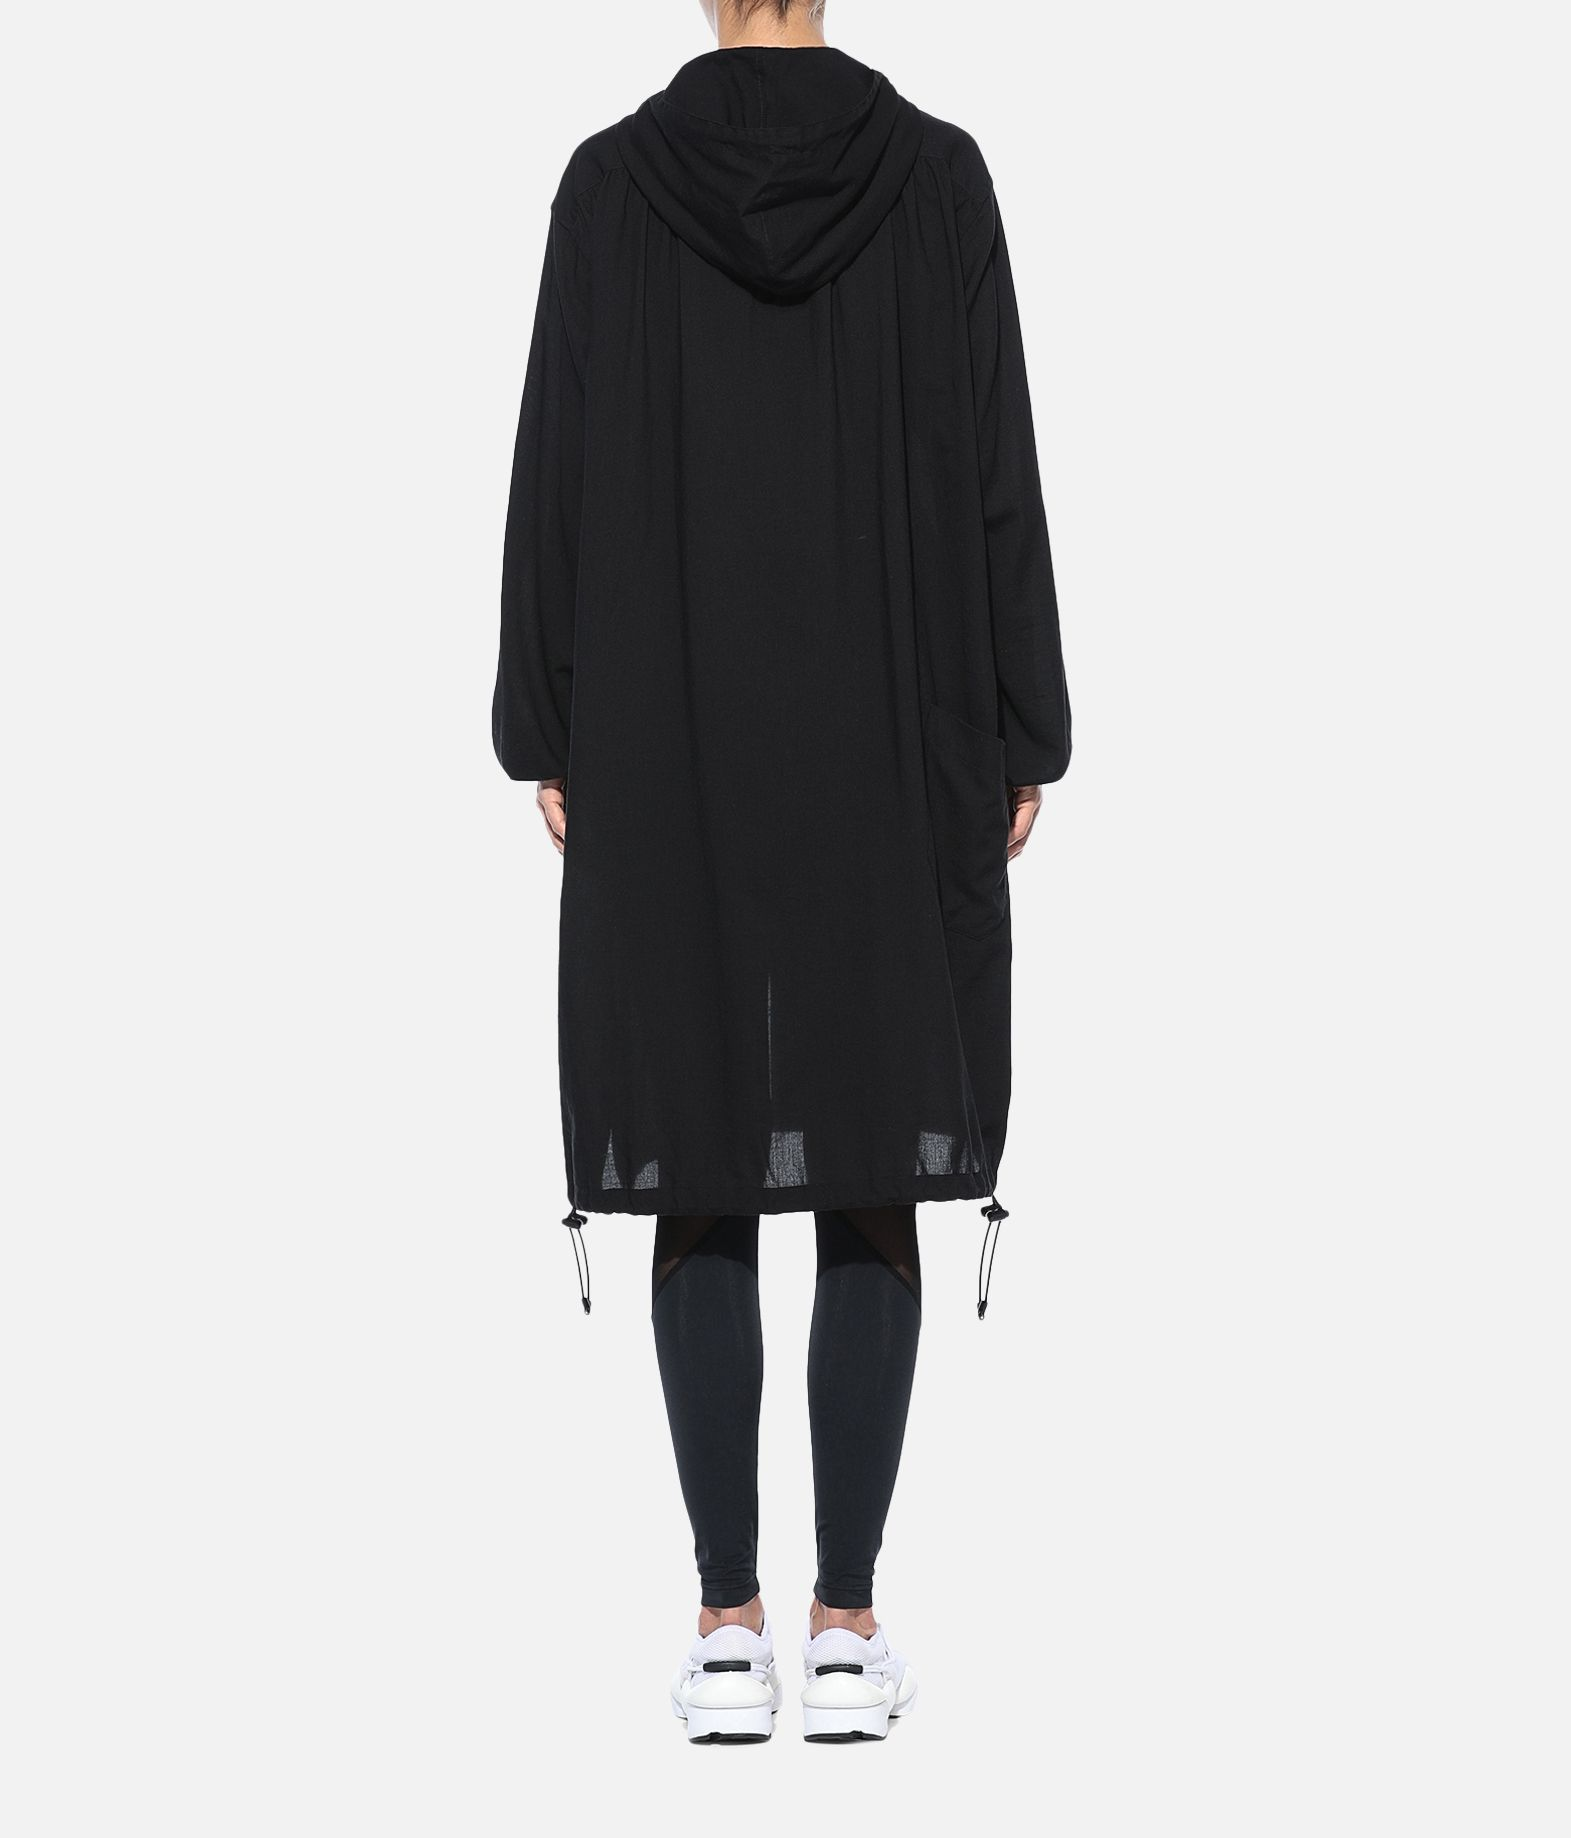 Y-3 Y-3 Hooded Long Shirt Long sleeve shirt Woman d